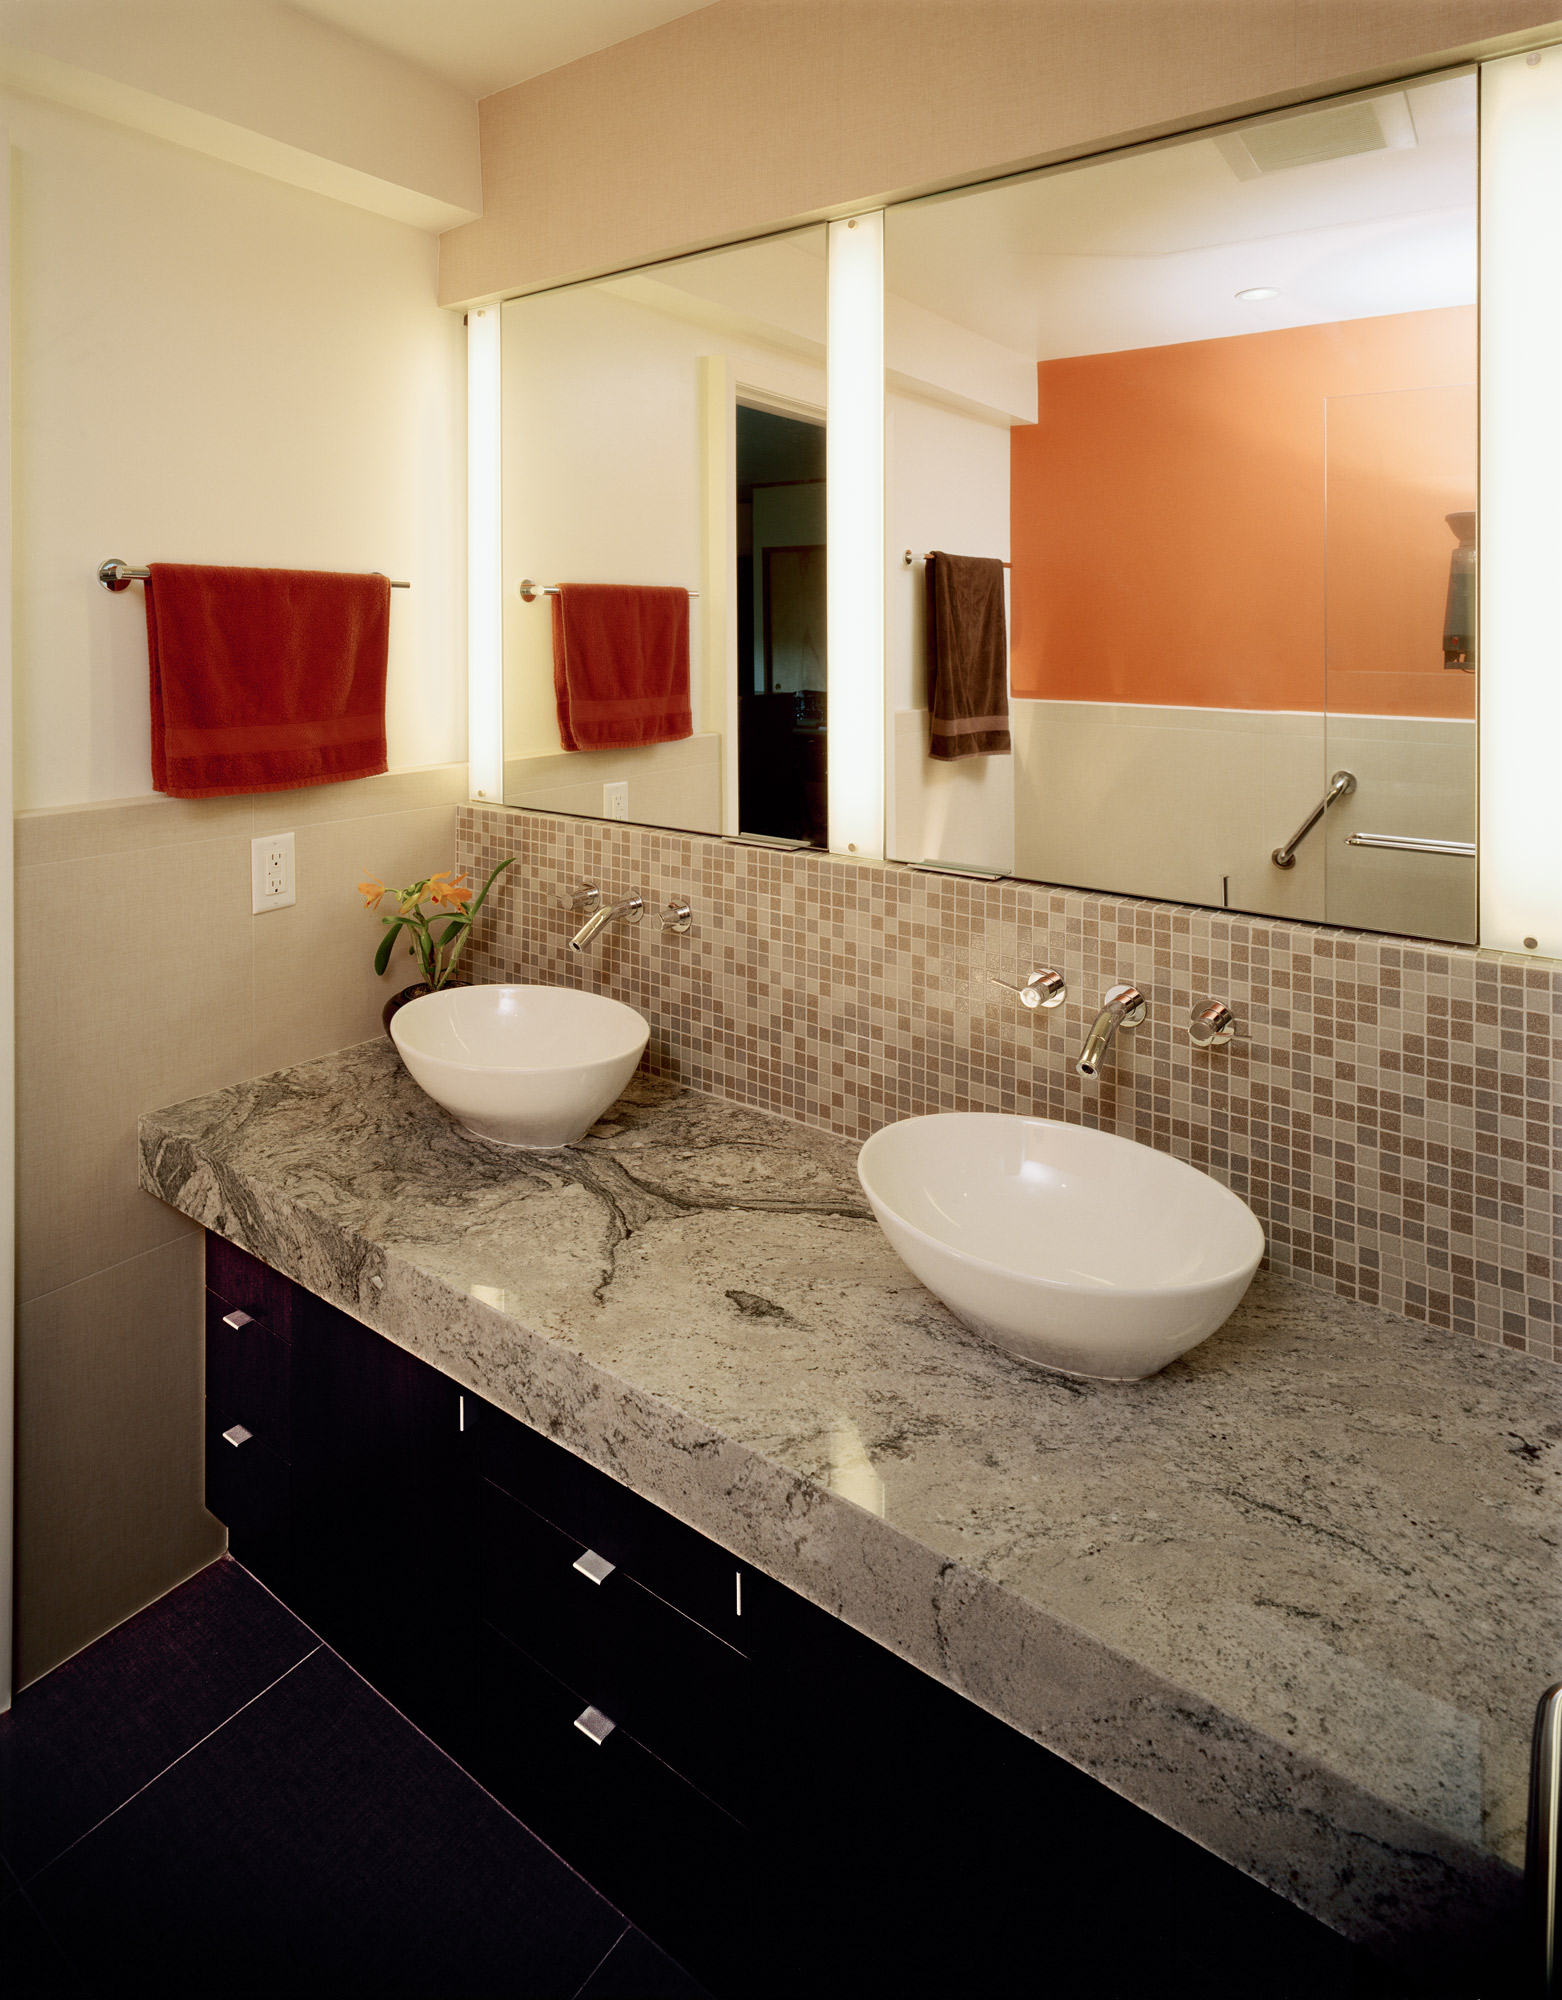 Kaplan-Architects-San Francisco-master-bath-remodel-1.jpg